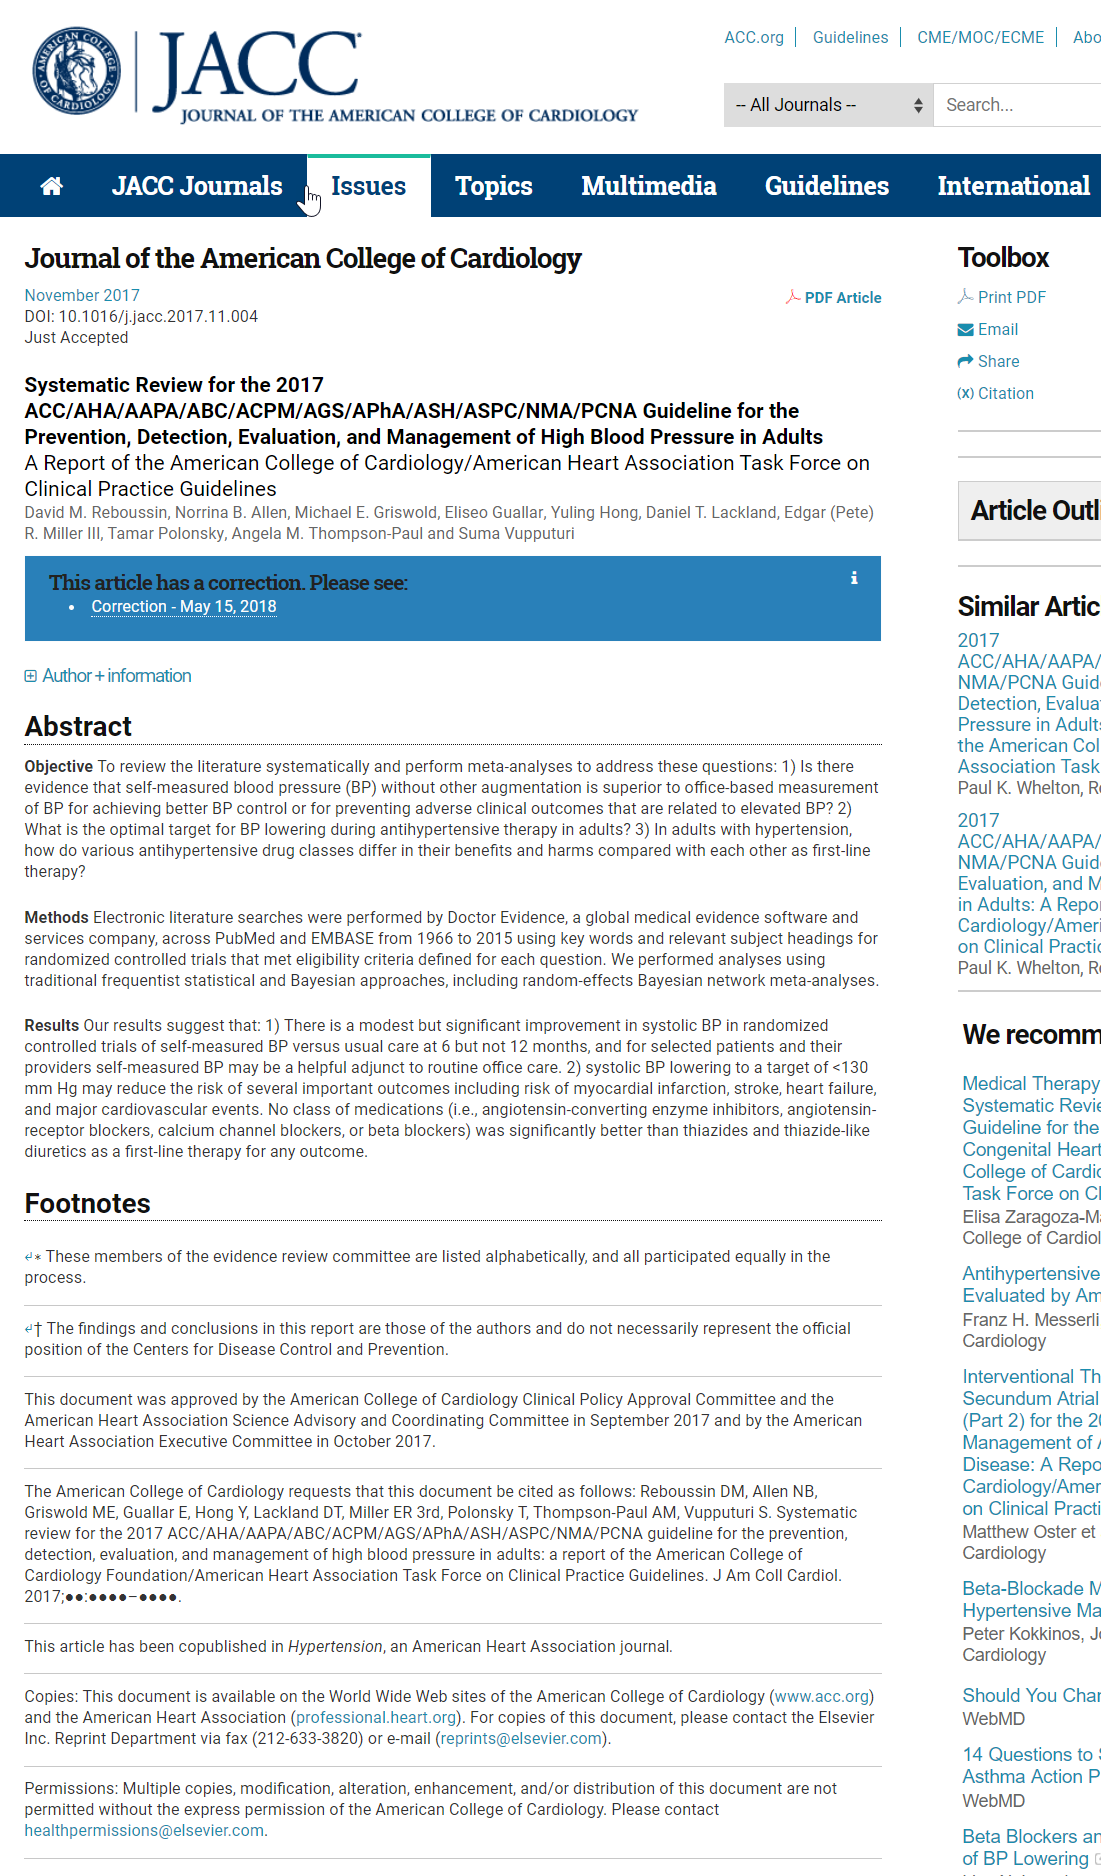 Systematic Review-Guideline for the Prevention, Detection, Evaluation